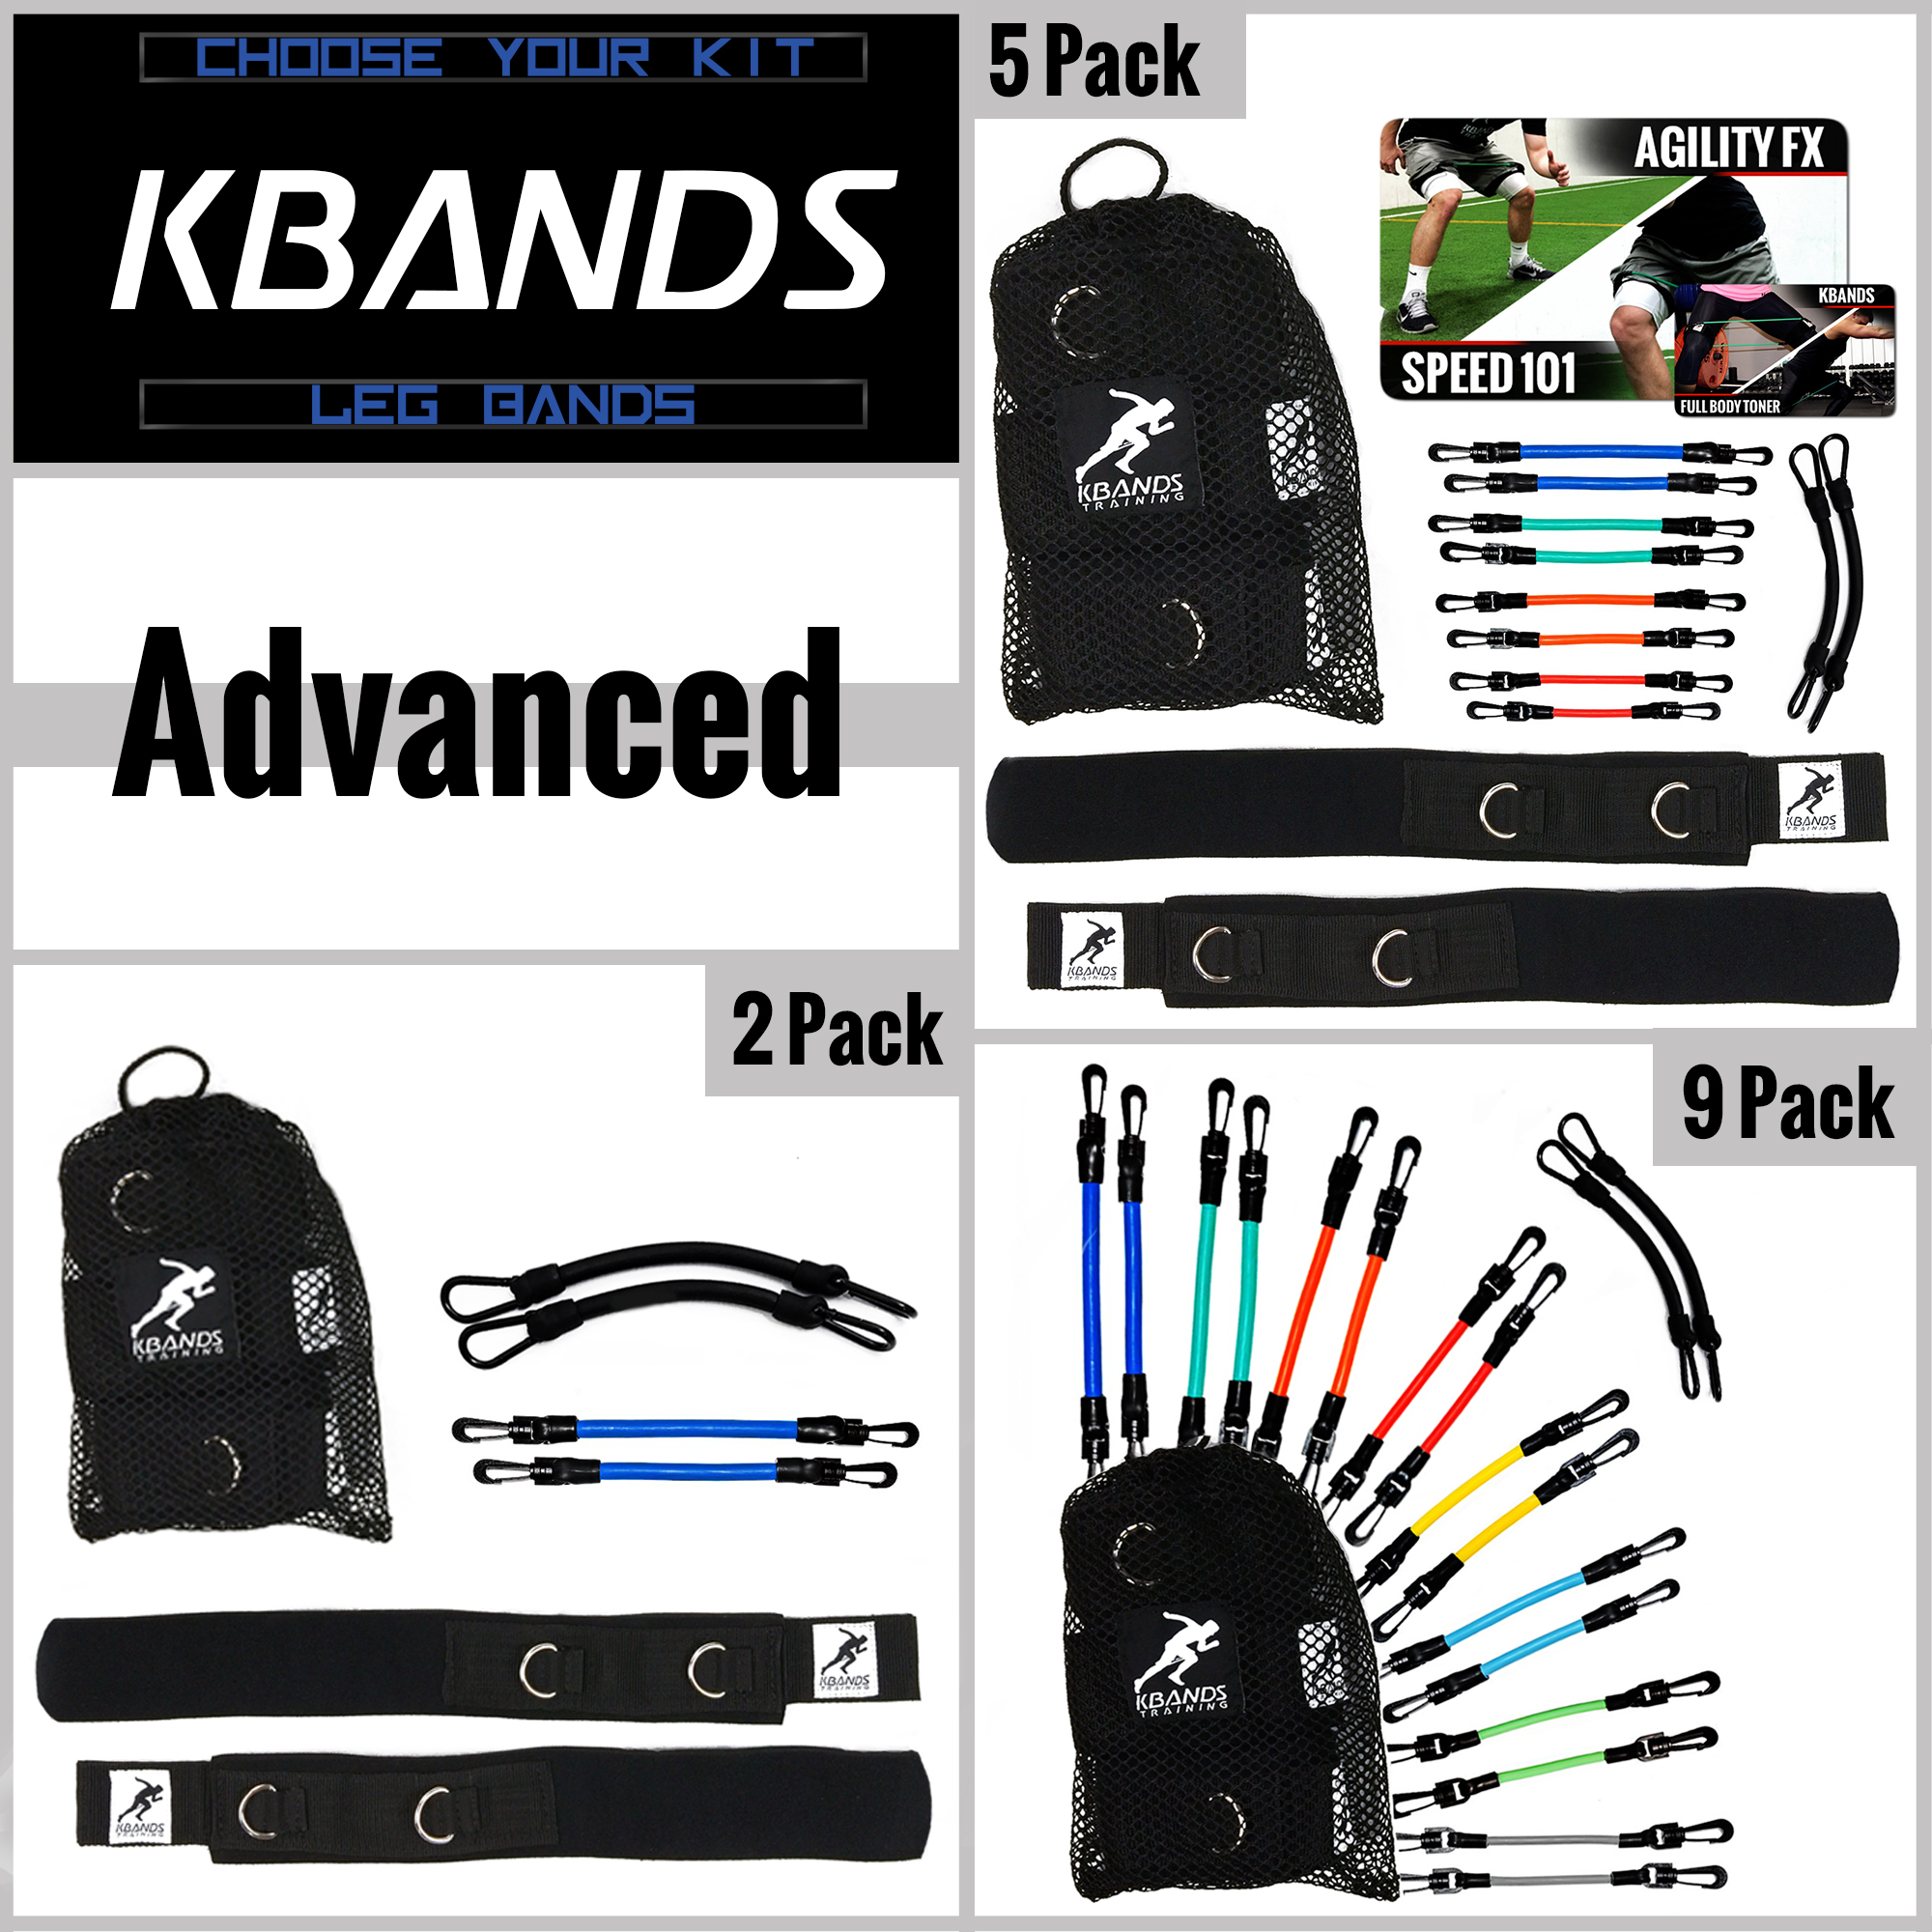 Kbands Advanced Pack